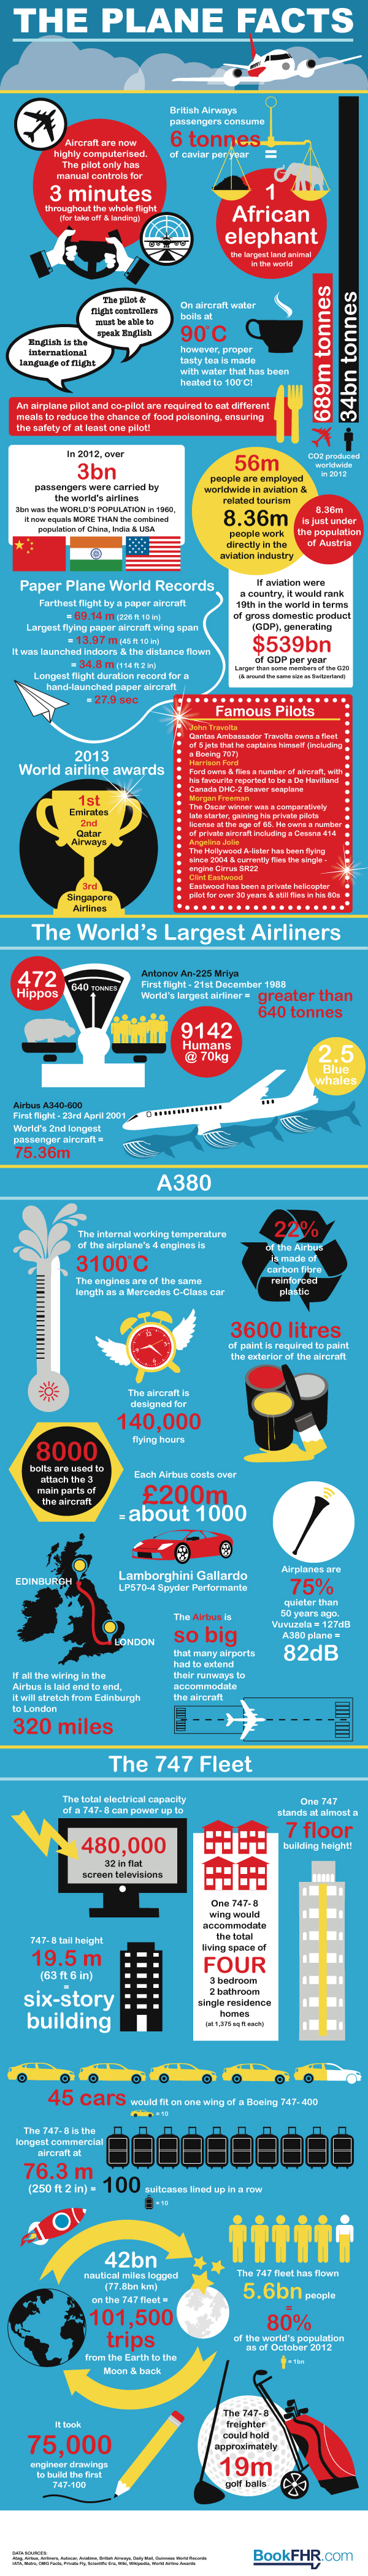 The Plane Facts